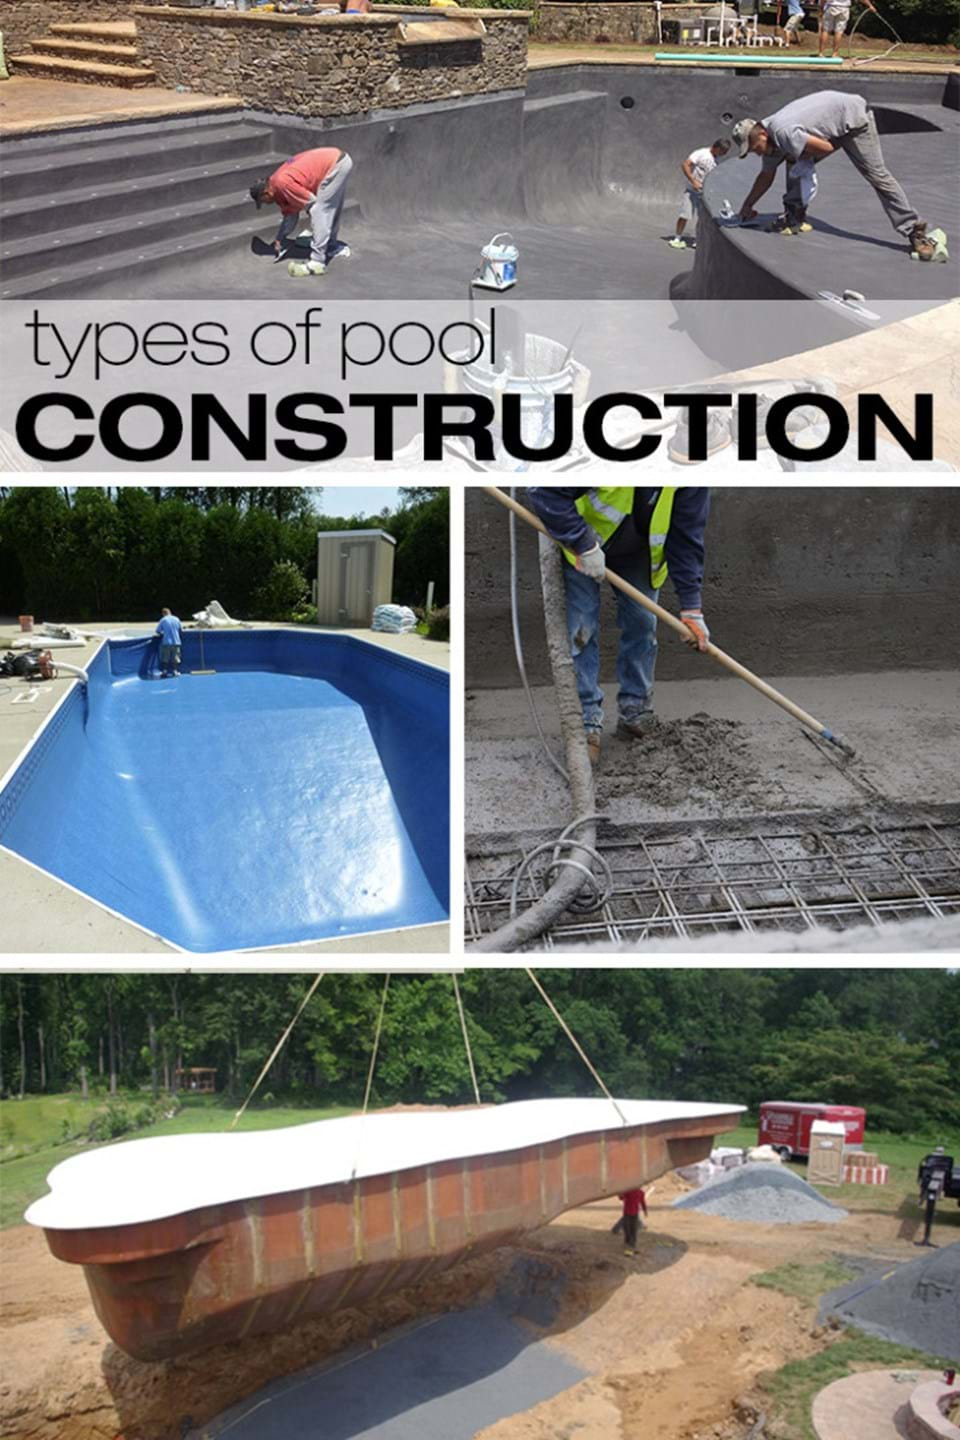 Types of inground swimming pools s r smith blog for Best type of inground pool